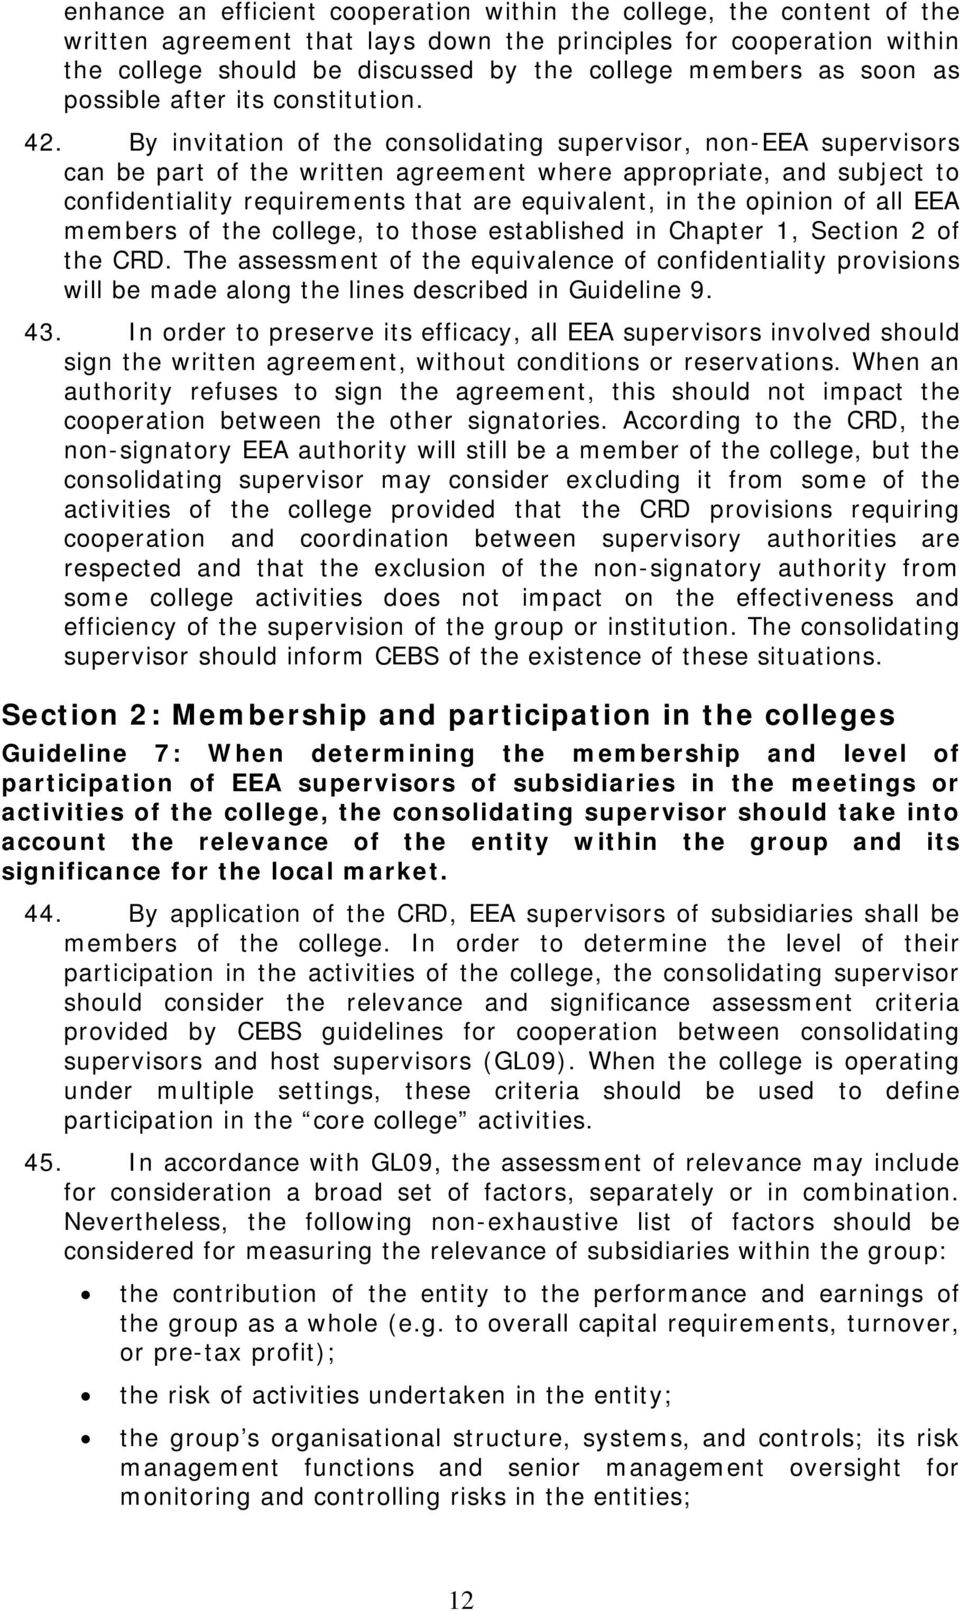 By invitation of the consolidating supervisor, non-eea supervisors can be part of the written agreement where appropriate, and subject to confidentiality requirements that are equivalent, in the